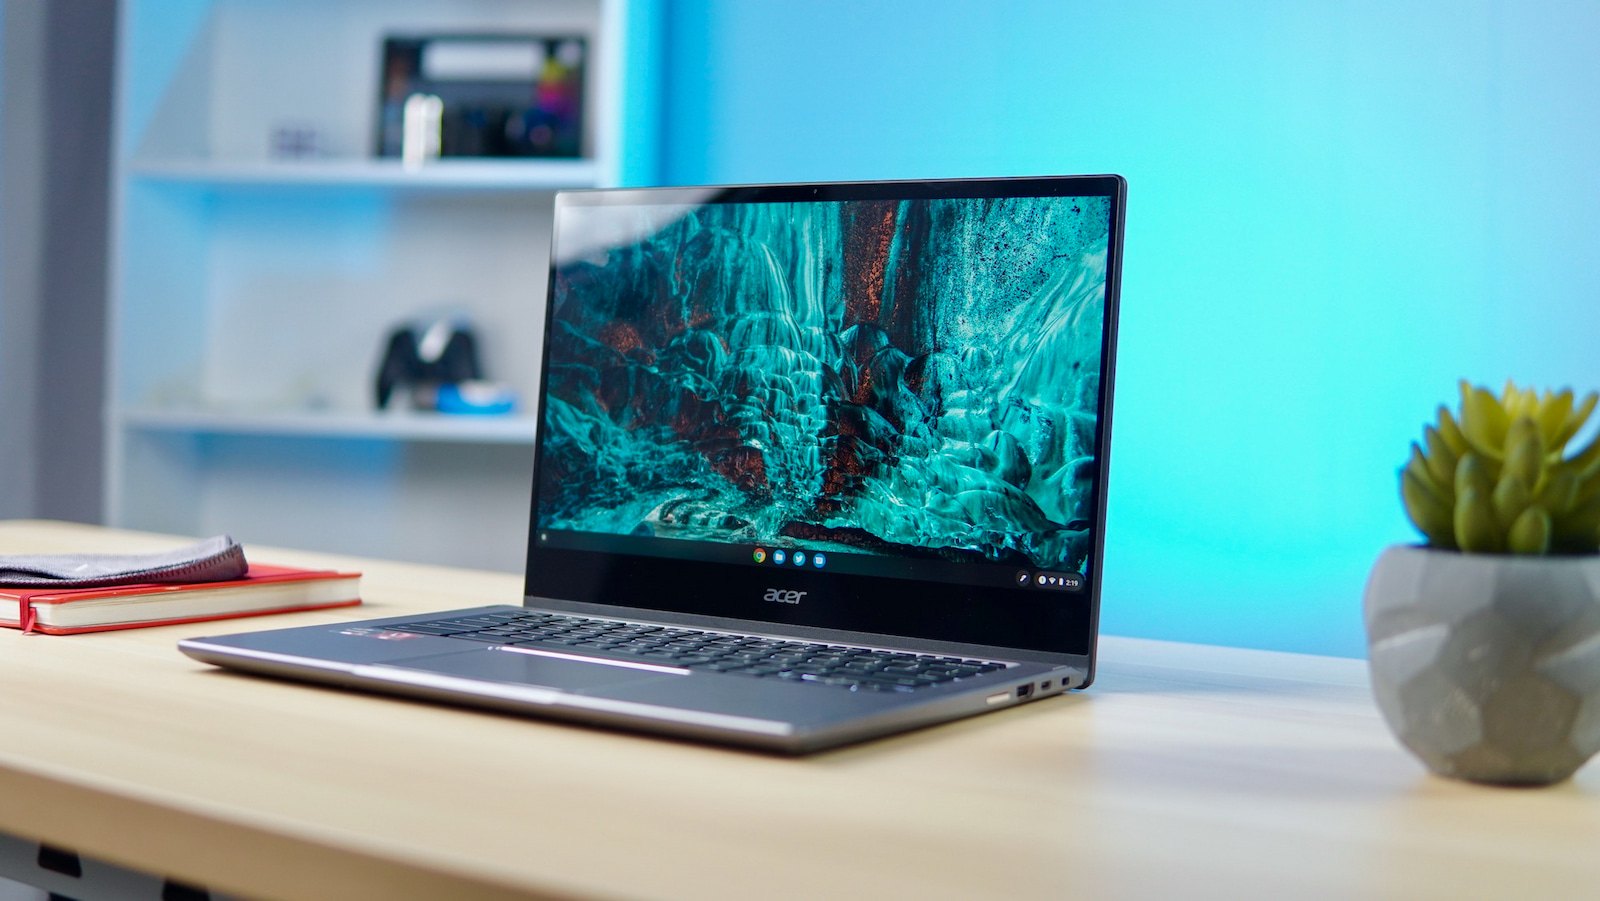 Google SVP Hiroshi Lockheimer's tweet has us very excited for 2021 Chromebooks